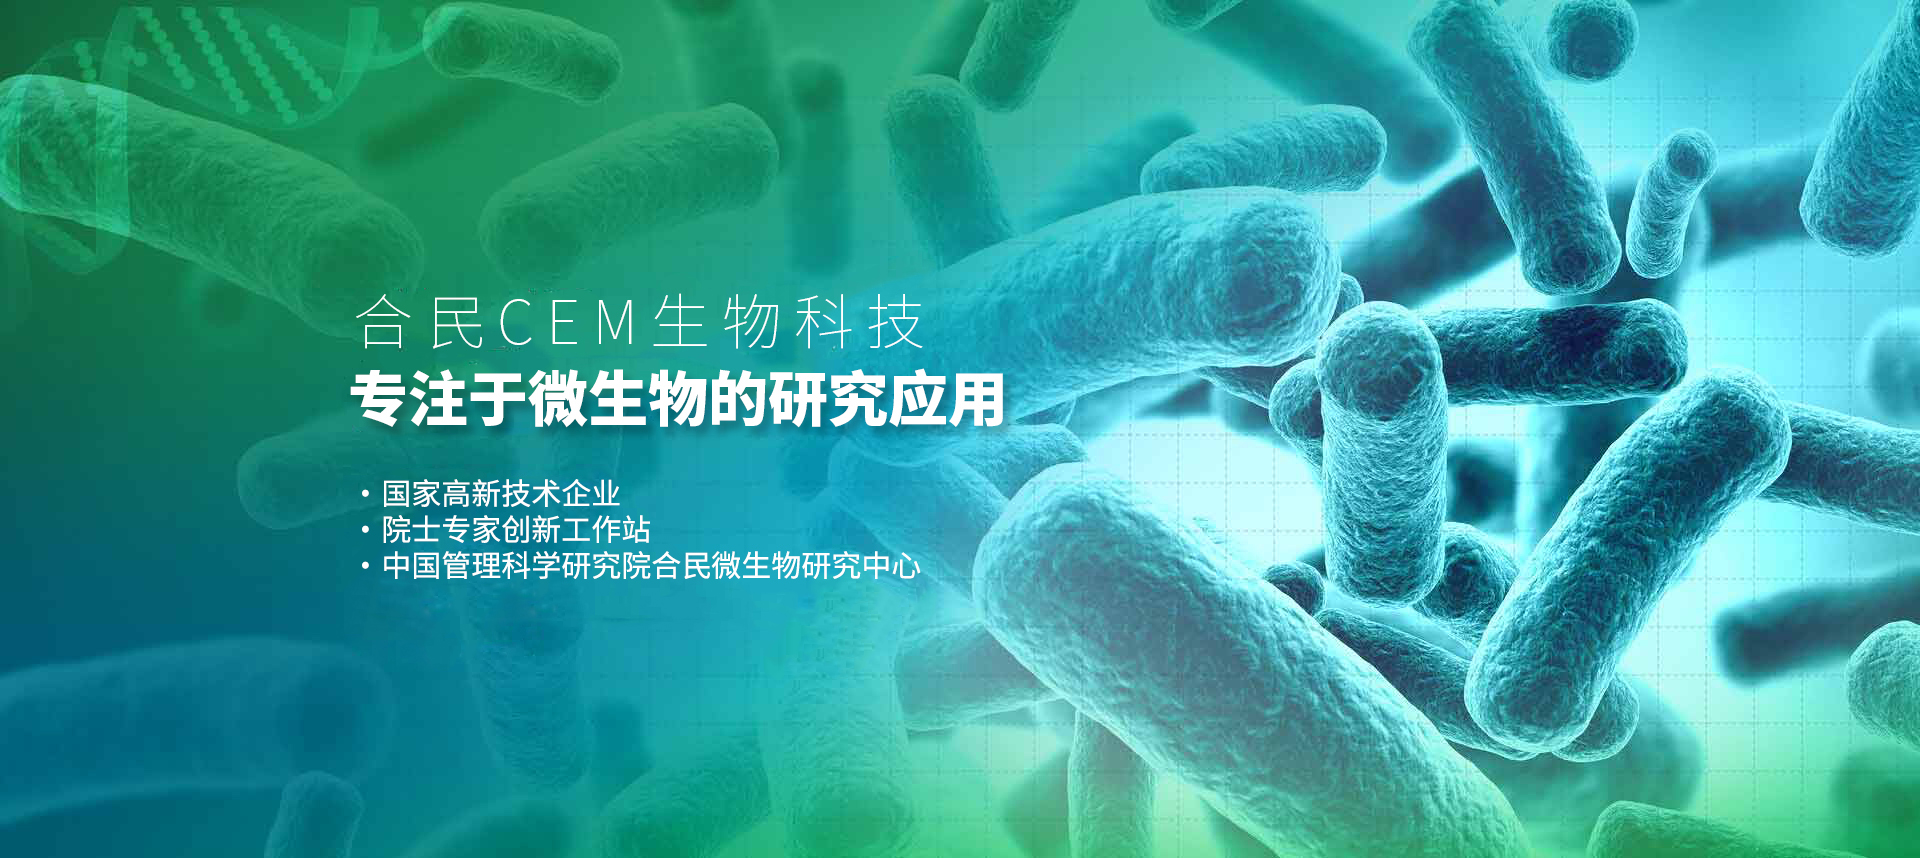 http://www.hemin-bio.com/data/upload/202011/20201109122510_194.jpg